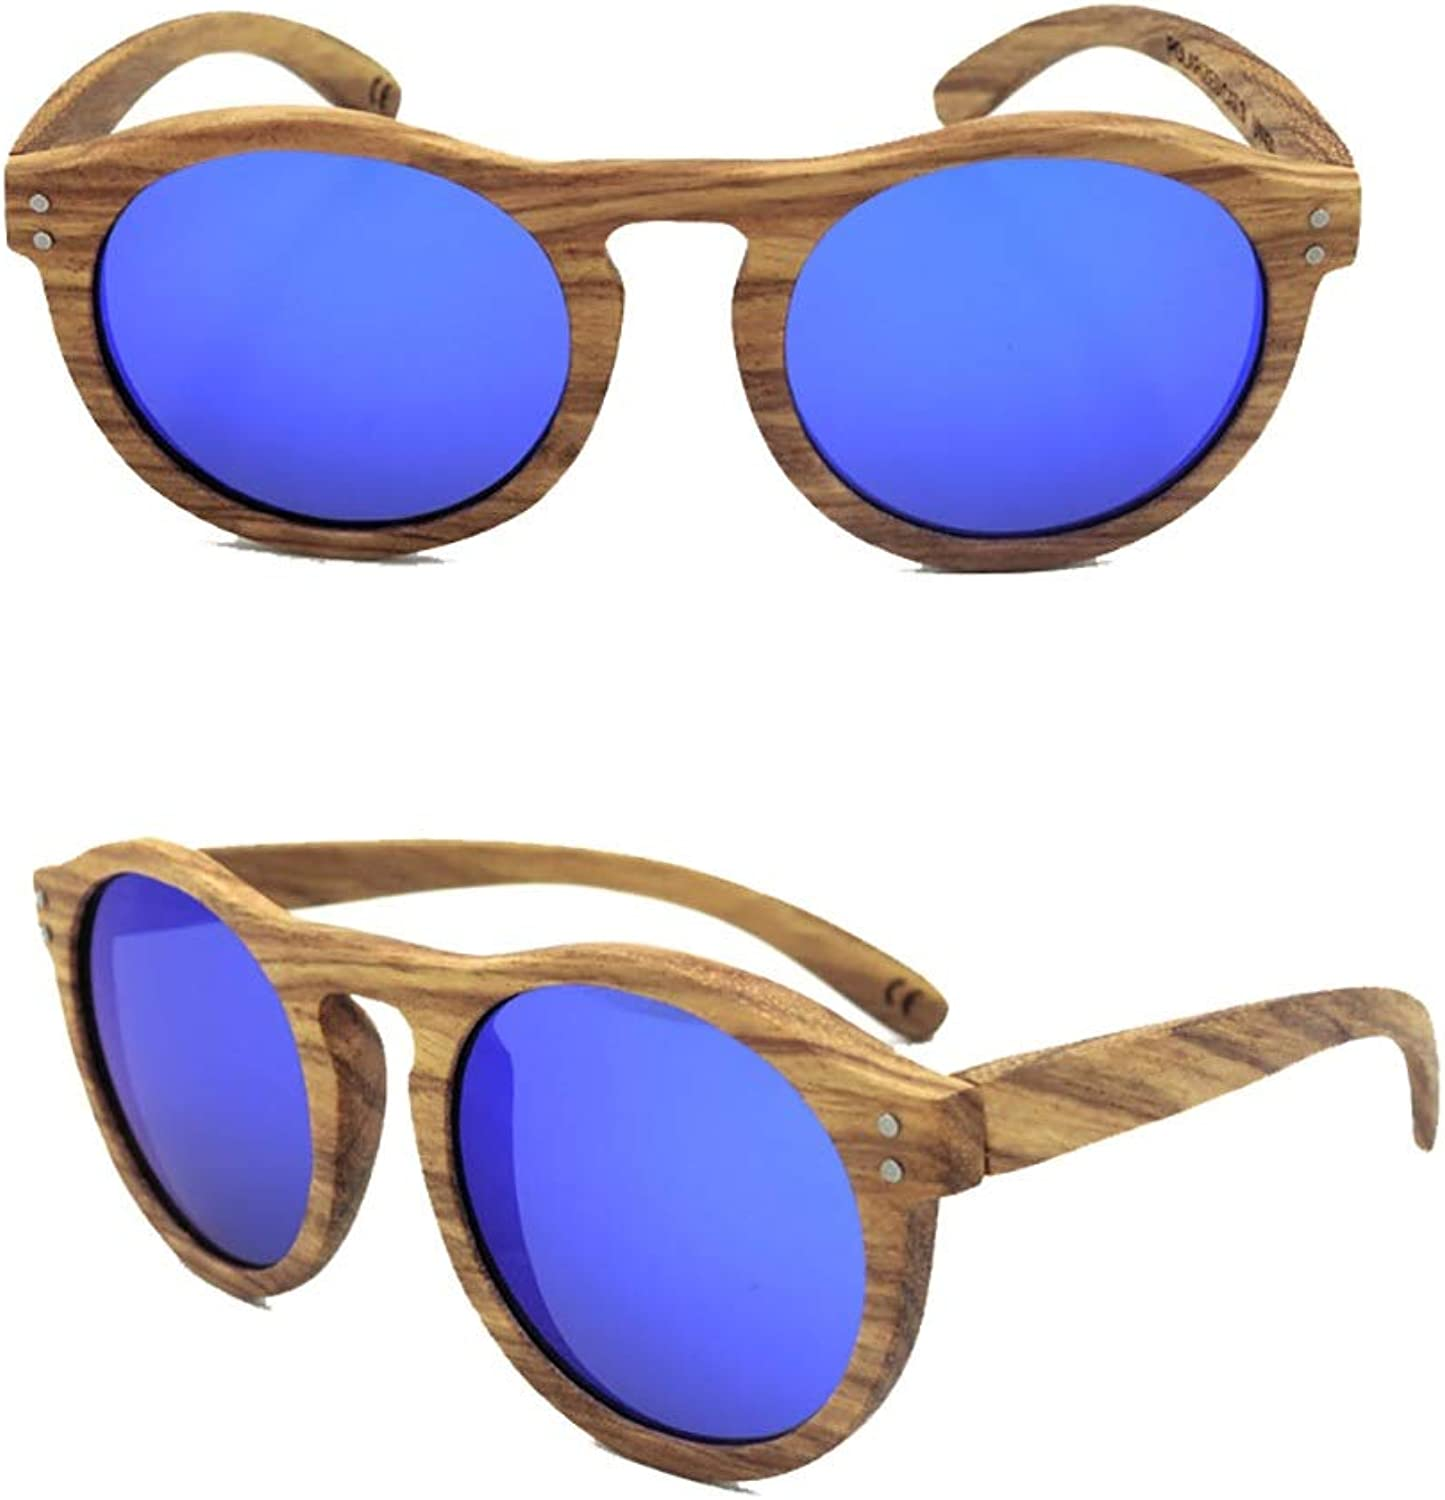 Fashion Women's Fashion Round Wooden Sunglasses, Polarized Lens Sunglasses Retro (color   blueee)